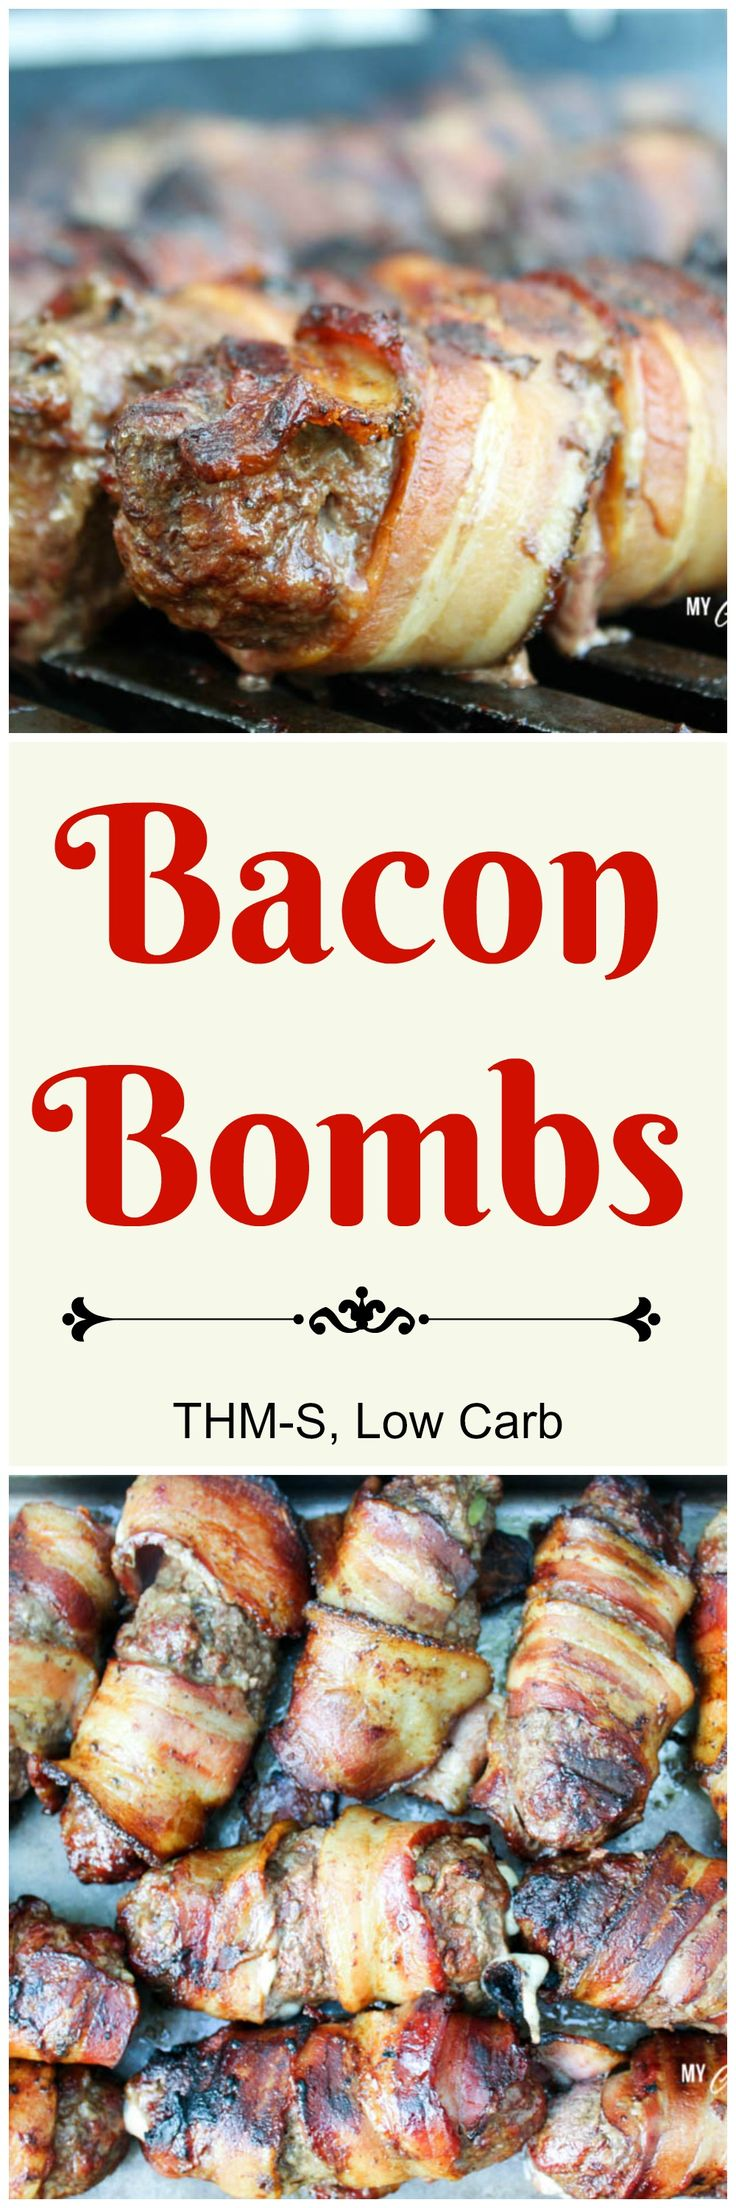 Bacon Bombs (THM-S, Low Carb) (Low Carb Beef Recipes)